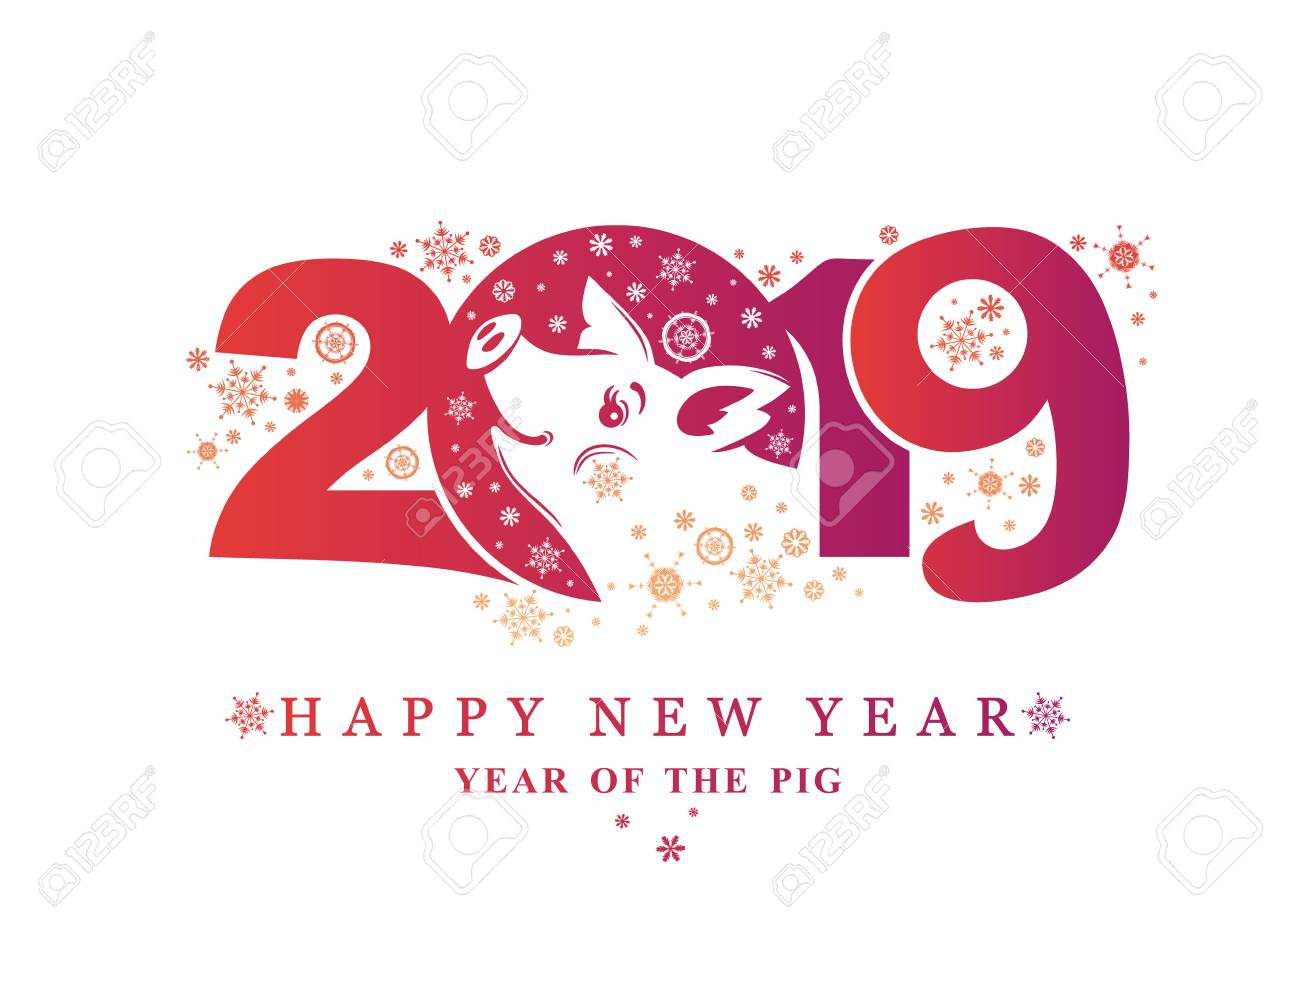 vector year of the pig 2019 new year card with a purple pattern 2019 and smiling pig and snowflakes vector new years calendar